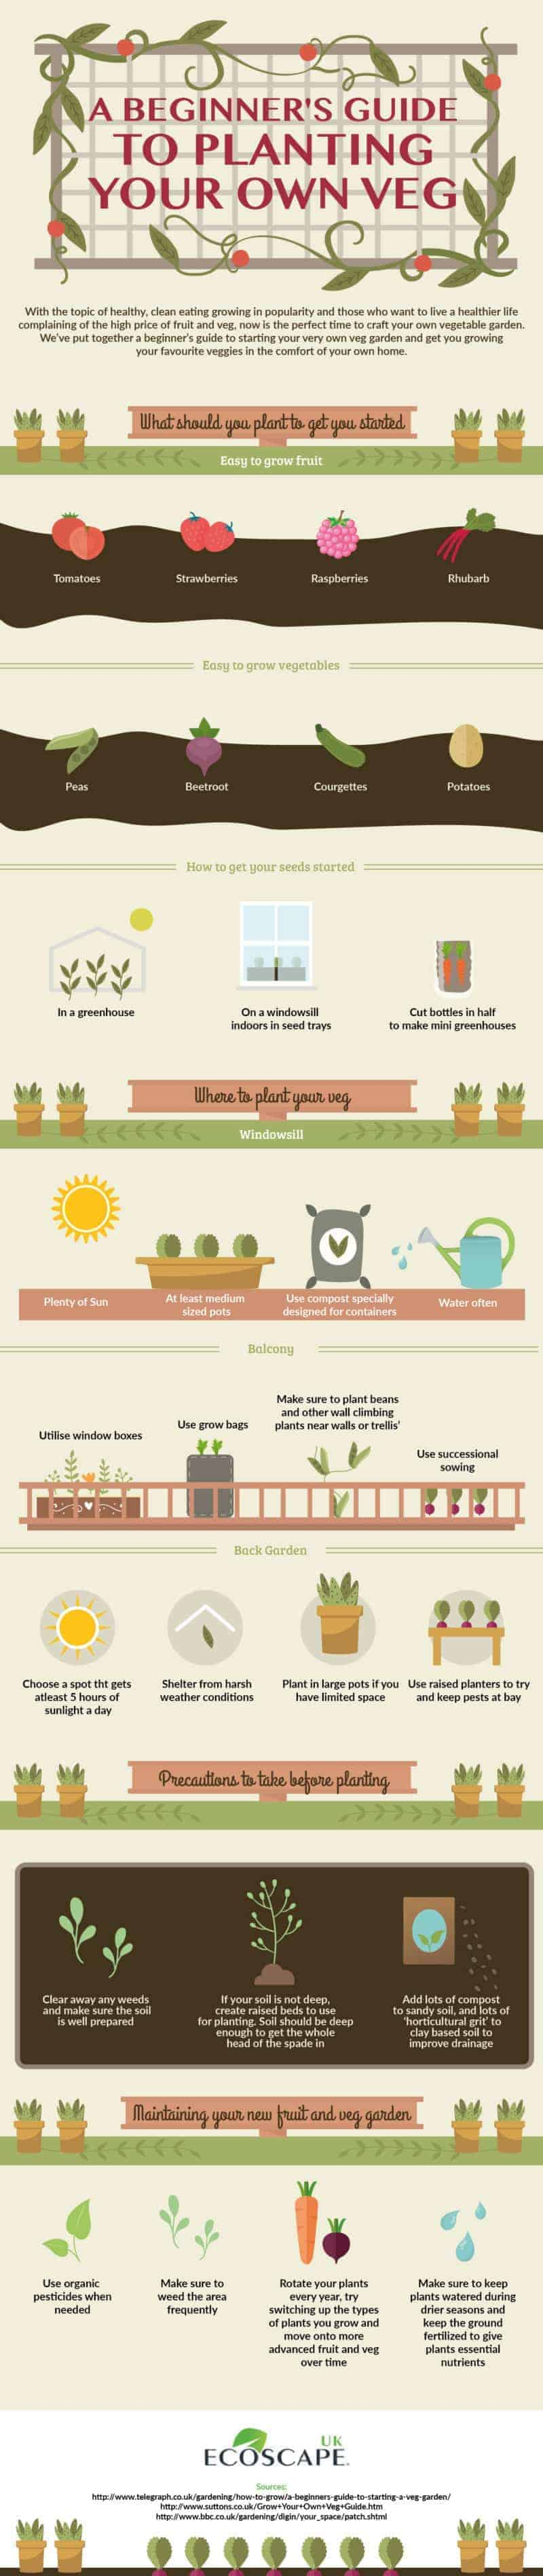 A beginers guide to planting your own veg - infographic